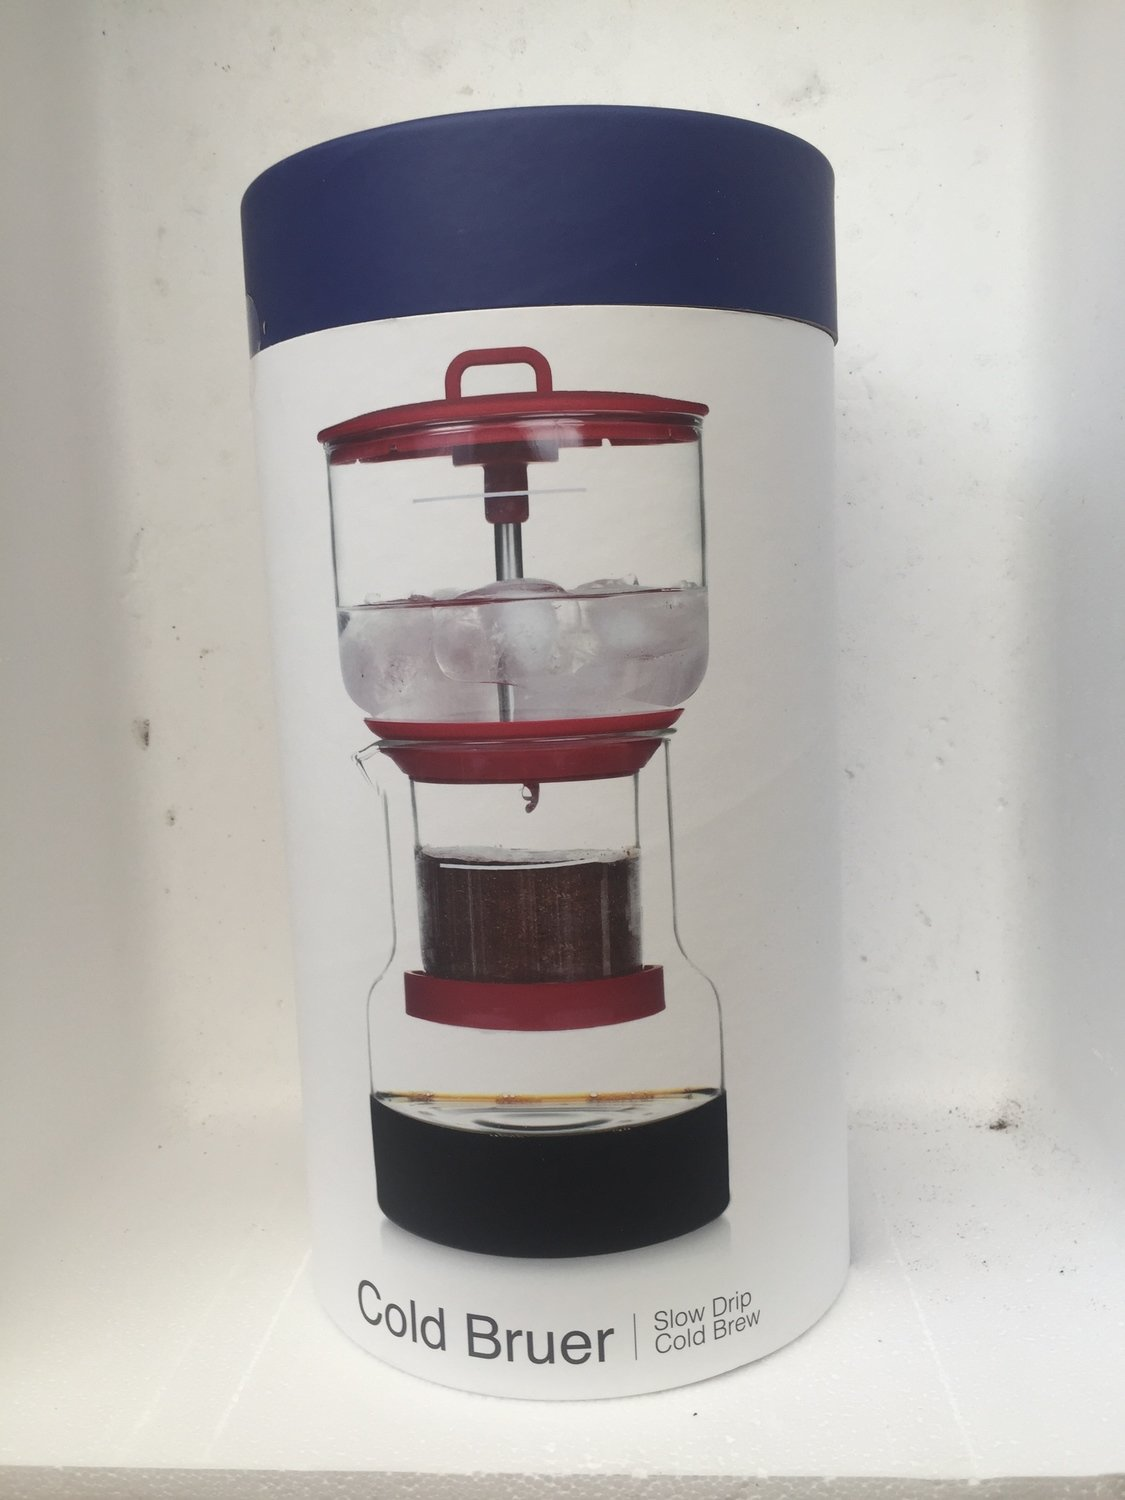 Bruer Cold Drip System red